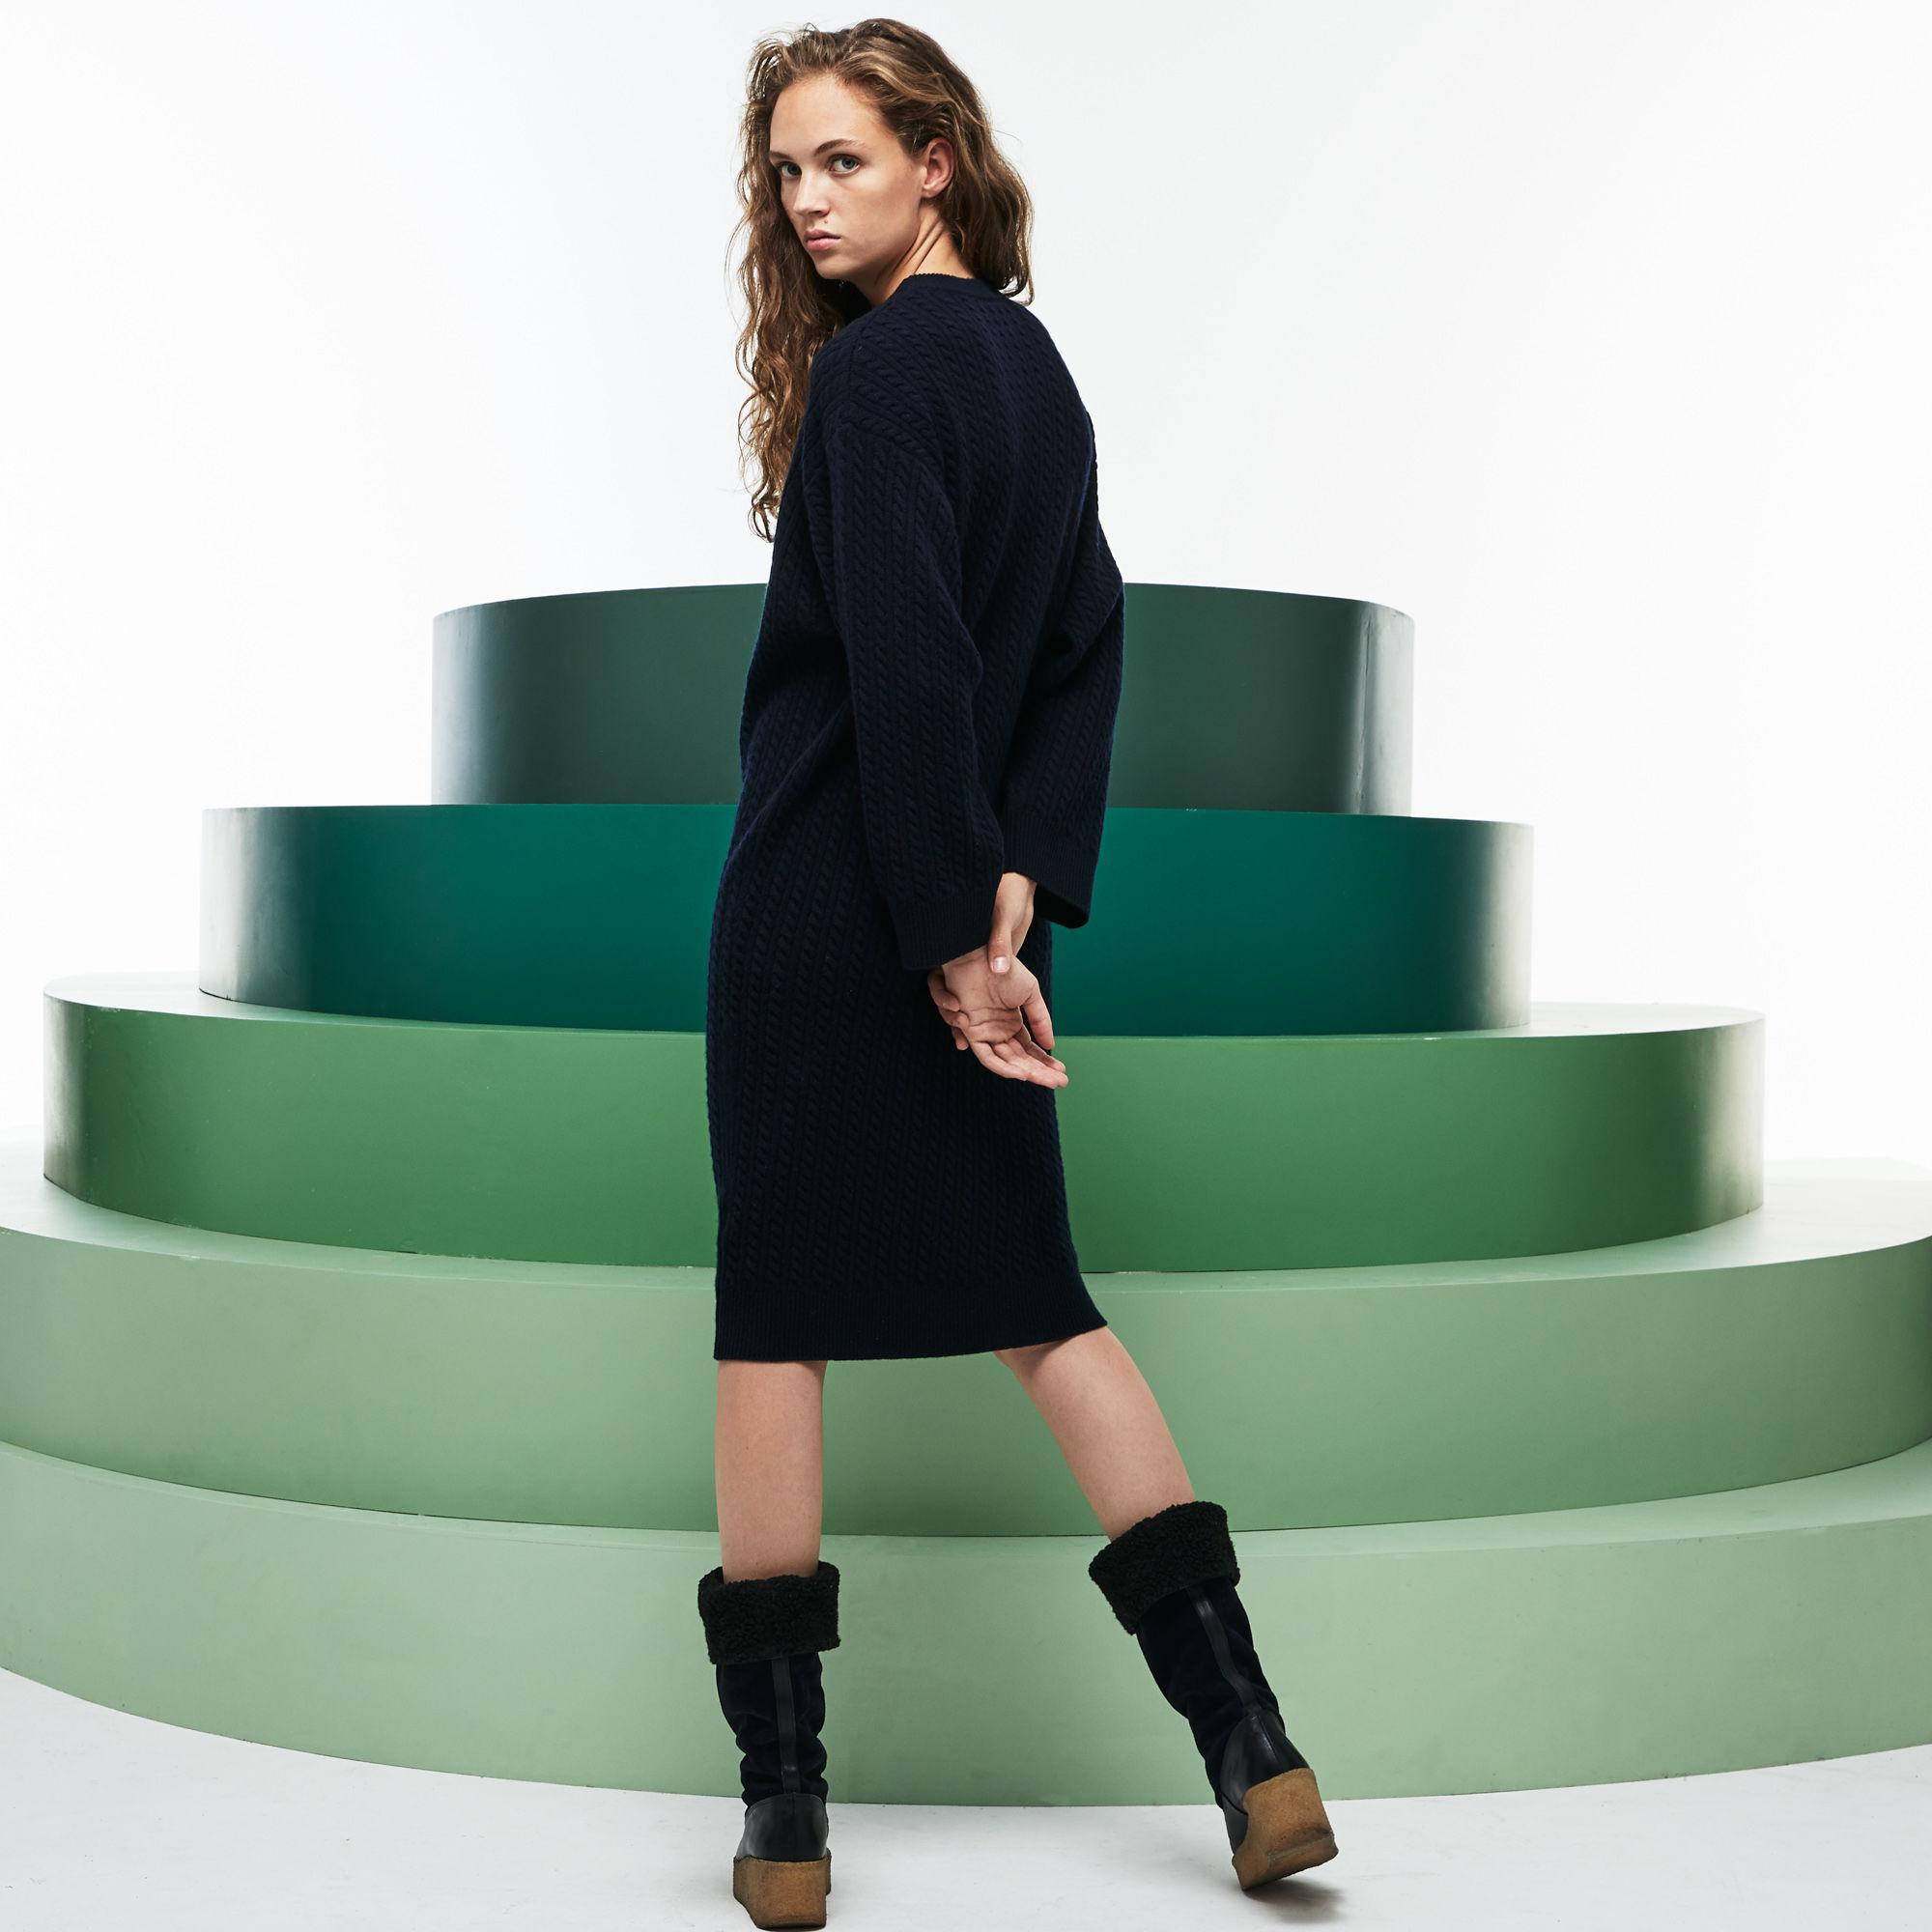 Fashion Oversized Cashmere And Wool Sweater Show Lacoste Lyst 5qZxpwzt4n